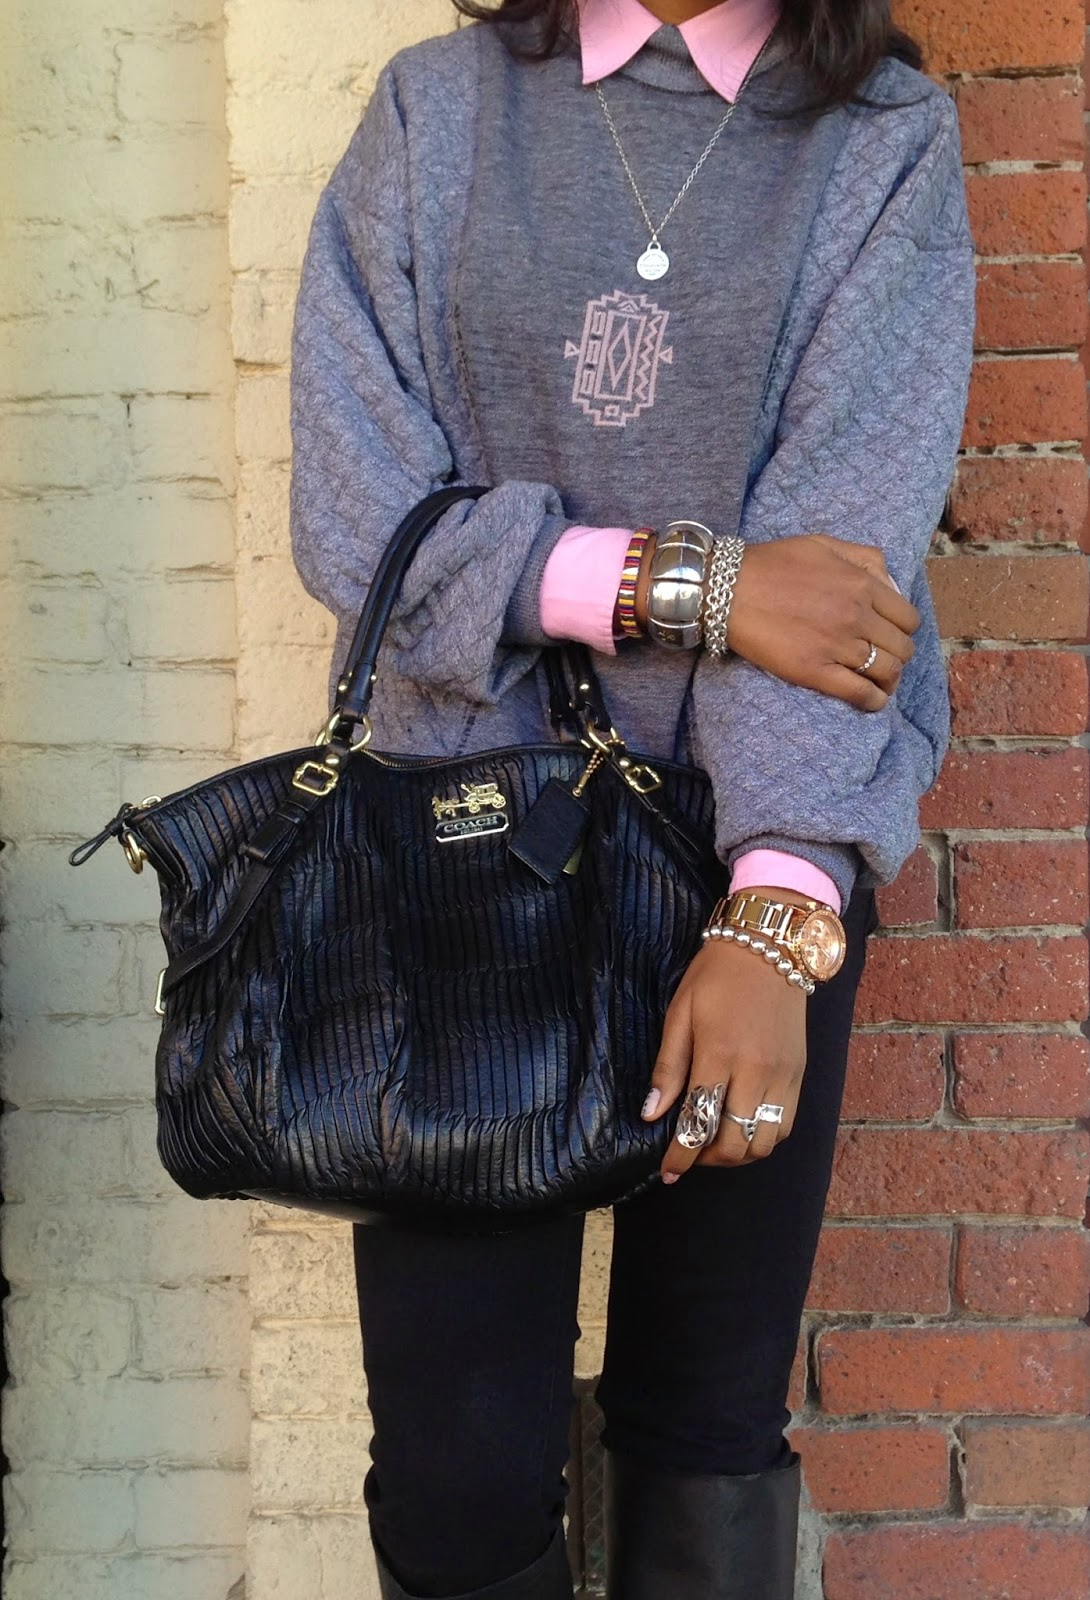 Defining Detials outfit accessories Coach pleated bag Tiffany & Co necklace and bracelet Nixon watch